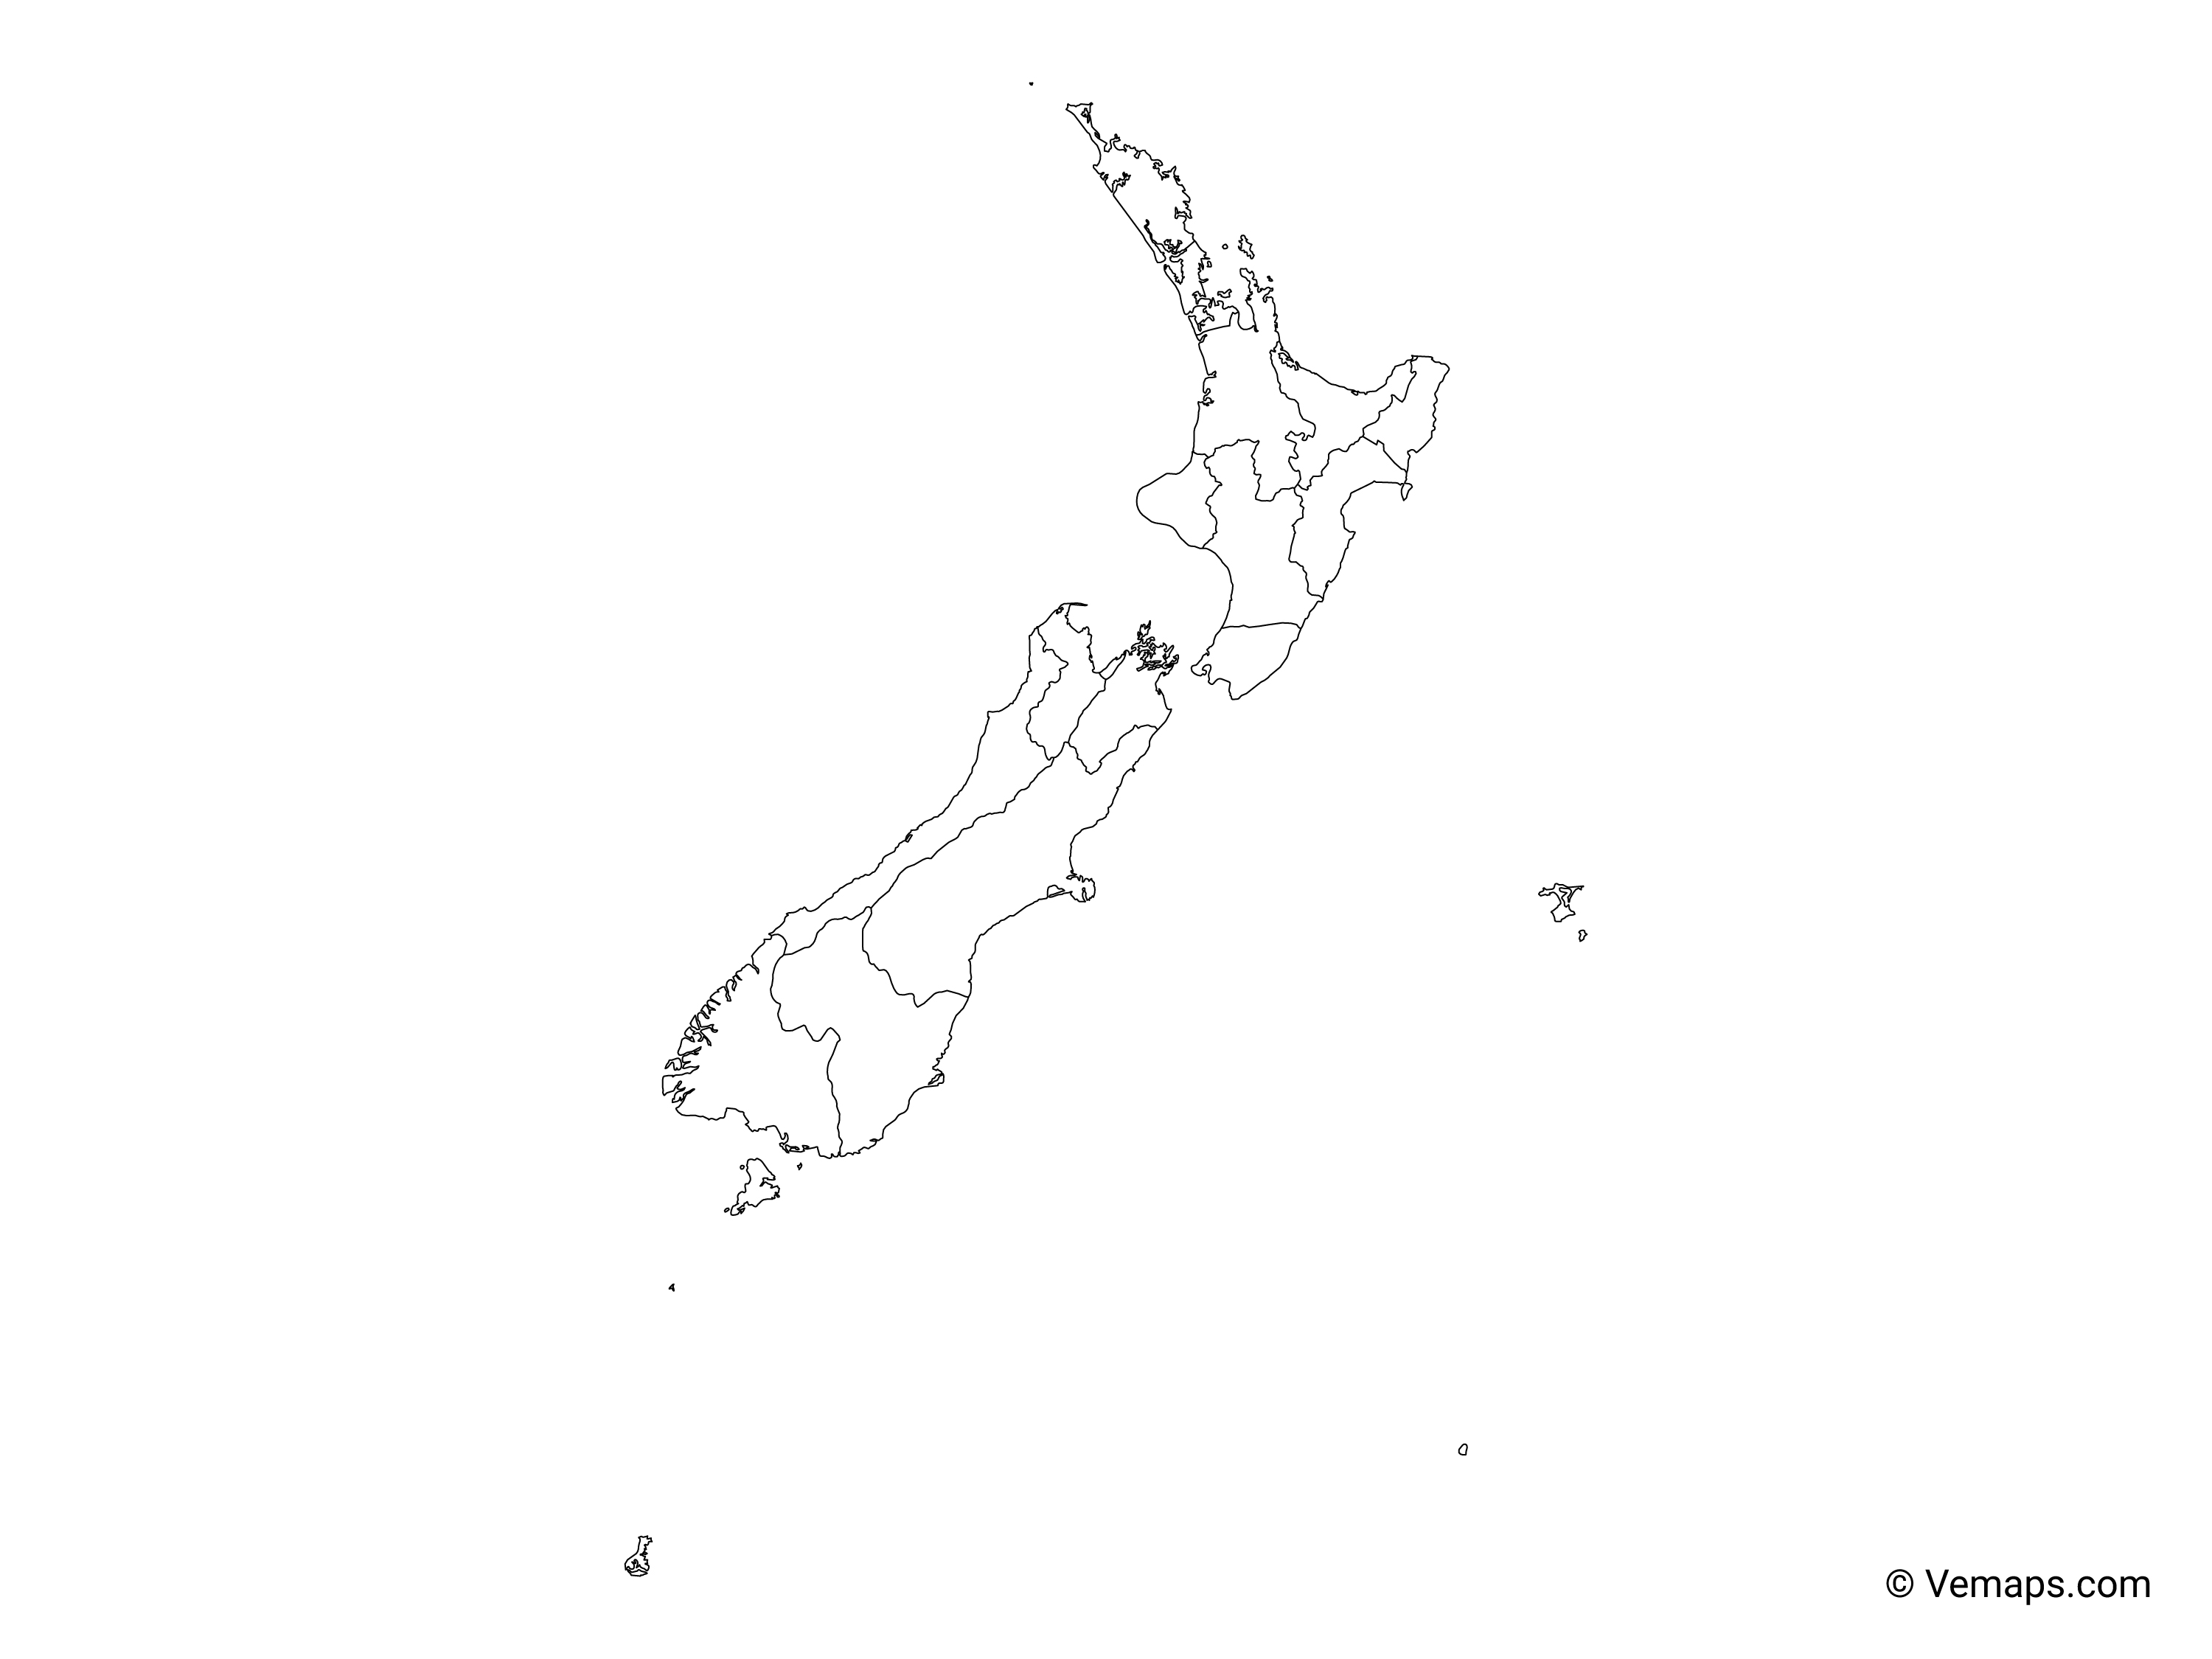 New Zealand Regions Map.Outline Map Of New Zealand With Regions Free Vector Maps